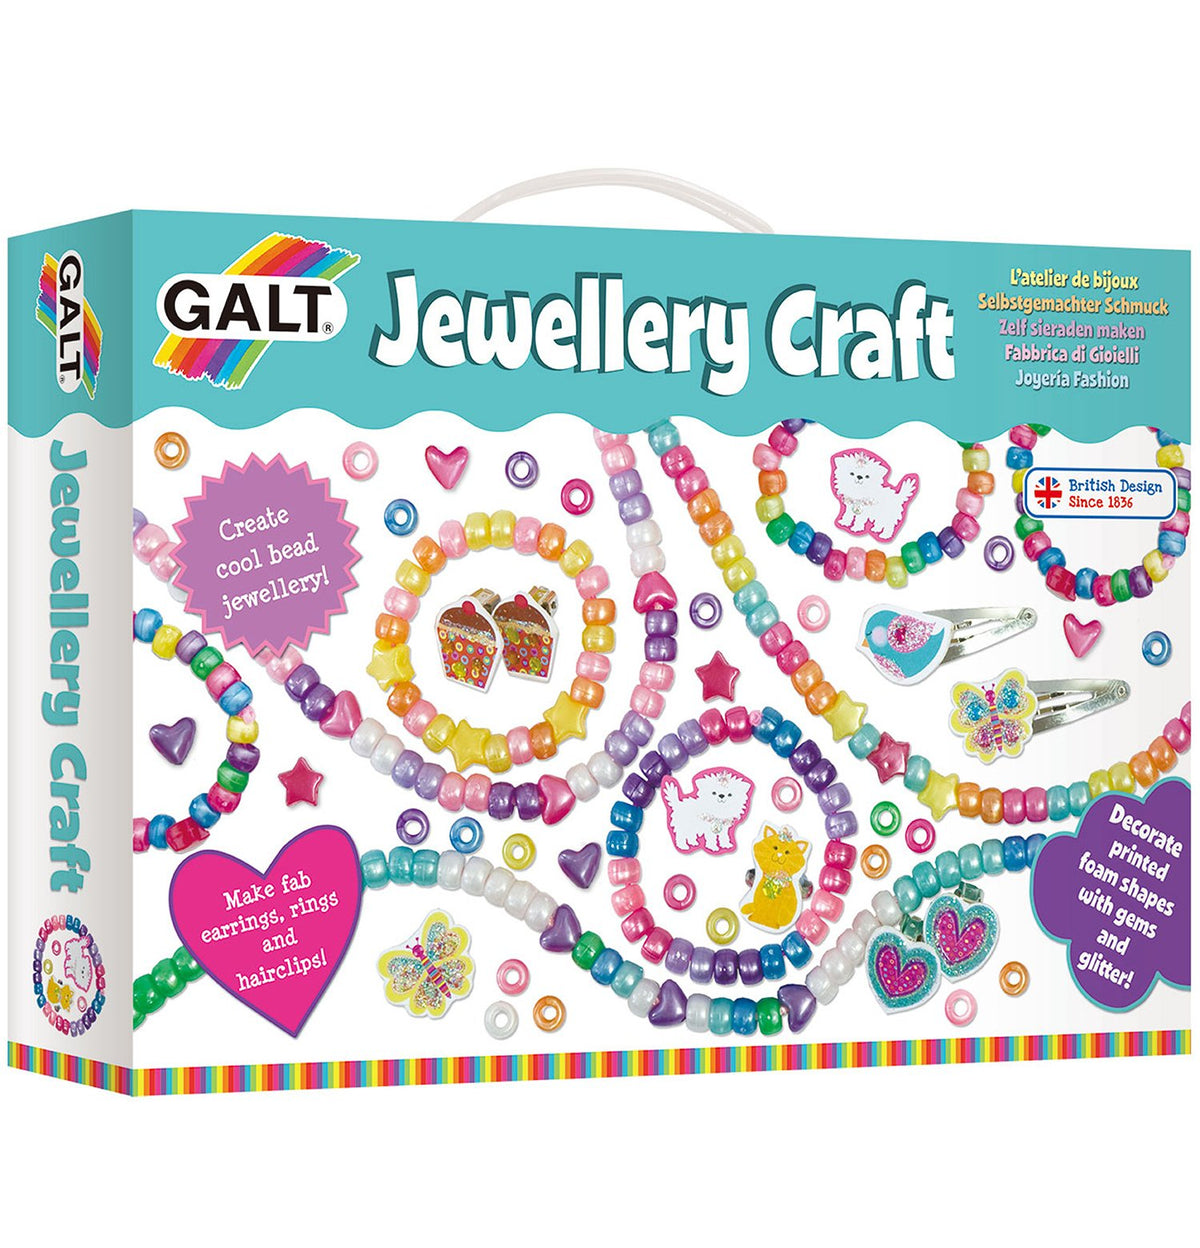 Jewellery Craft - Galt